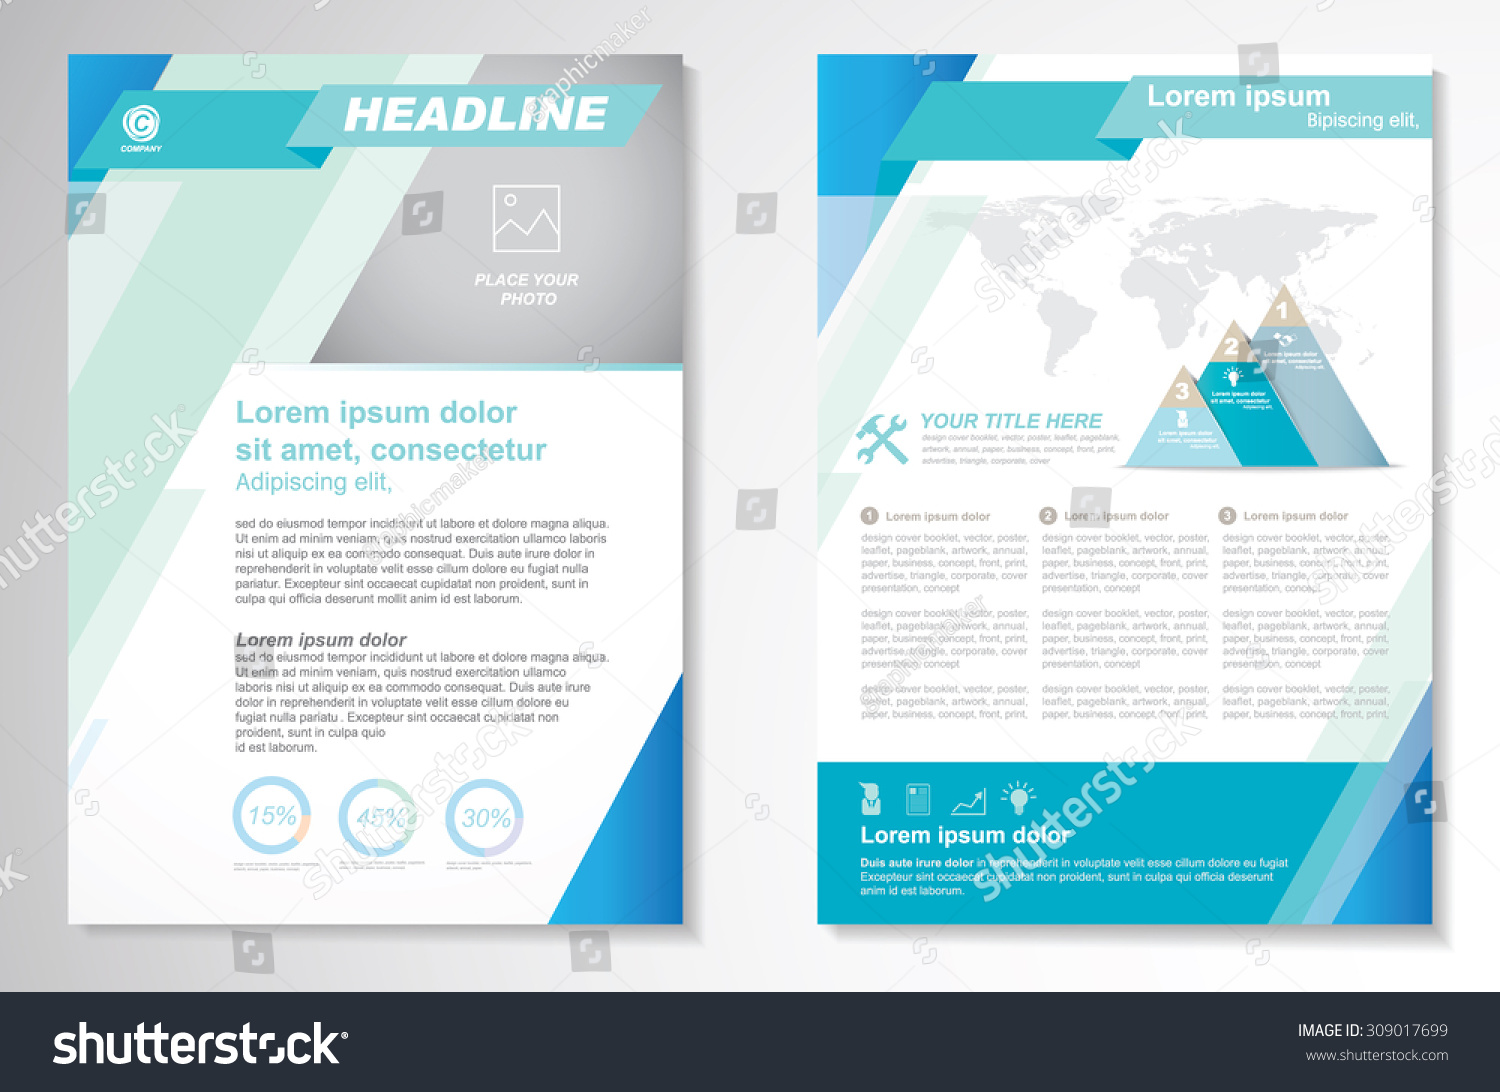 Nice 1 Page Resumes Big 1 Week Calendar Template Shaped 1099 Agreement Template 11 Vuze Search Templates Old 15 Year Old Resume Example White2 Week Notice Templates Vector Brochure Flyer Design Layout Template Stock Vector ..